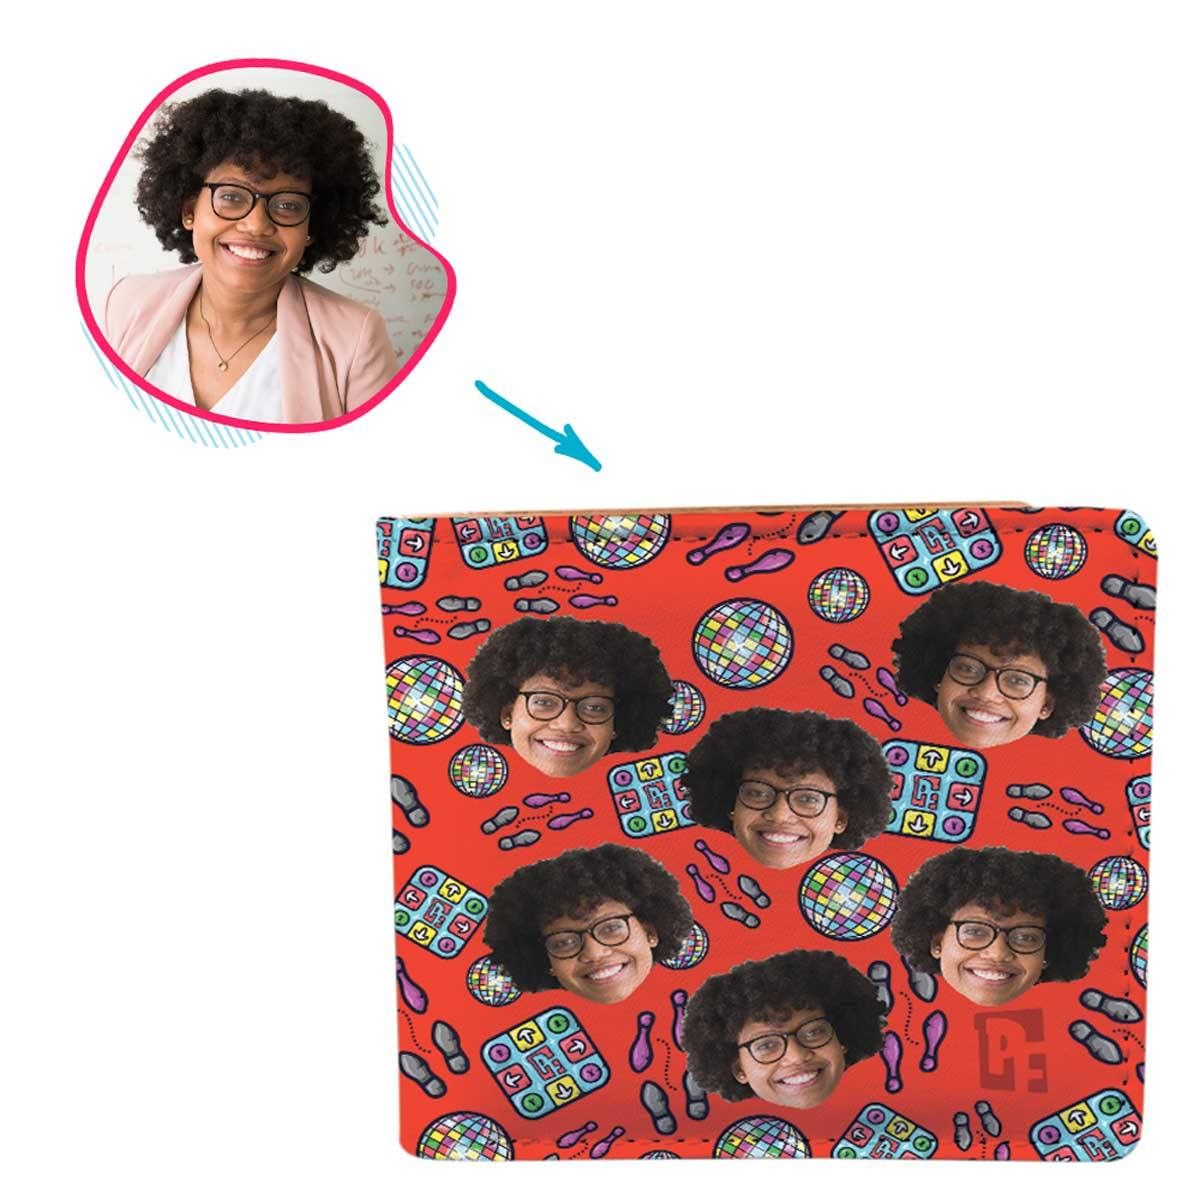 red Dancing wallet personalized with photo of face printed on it